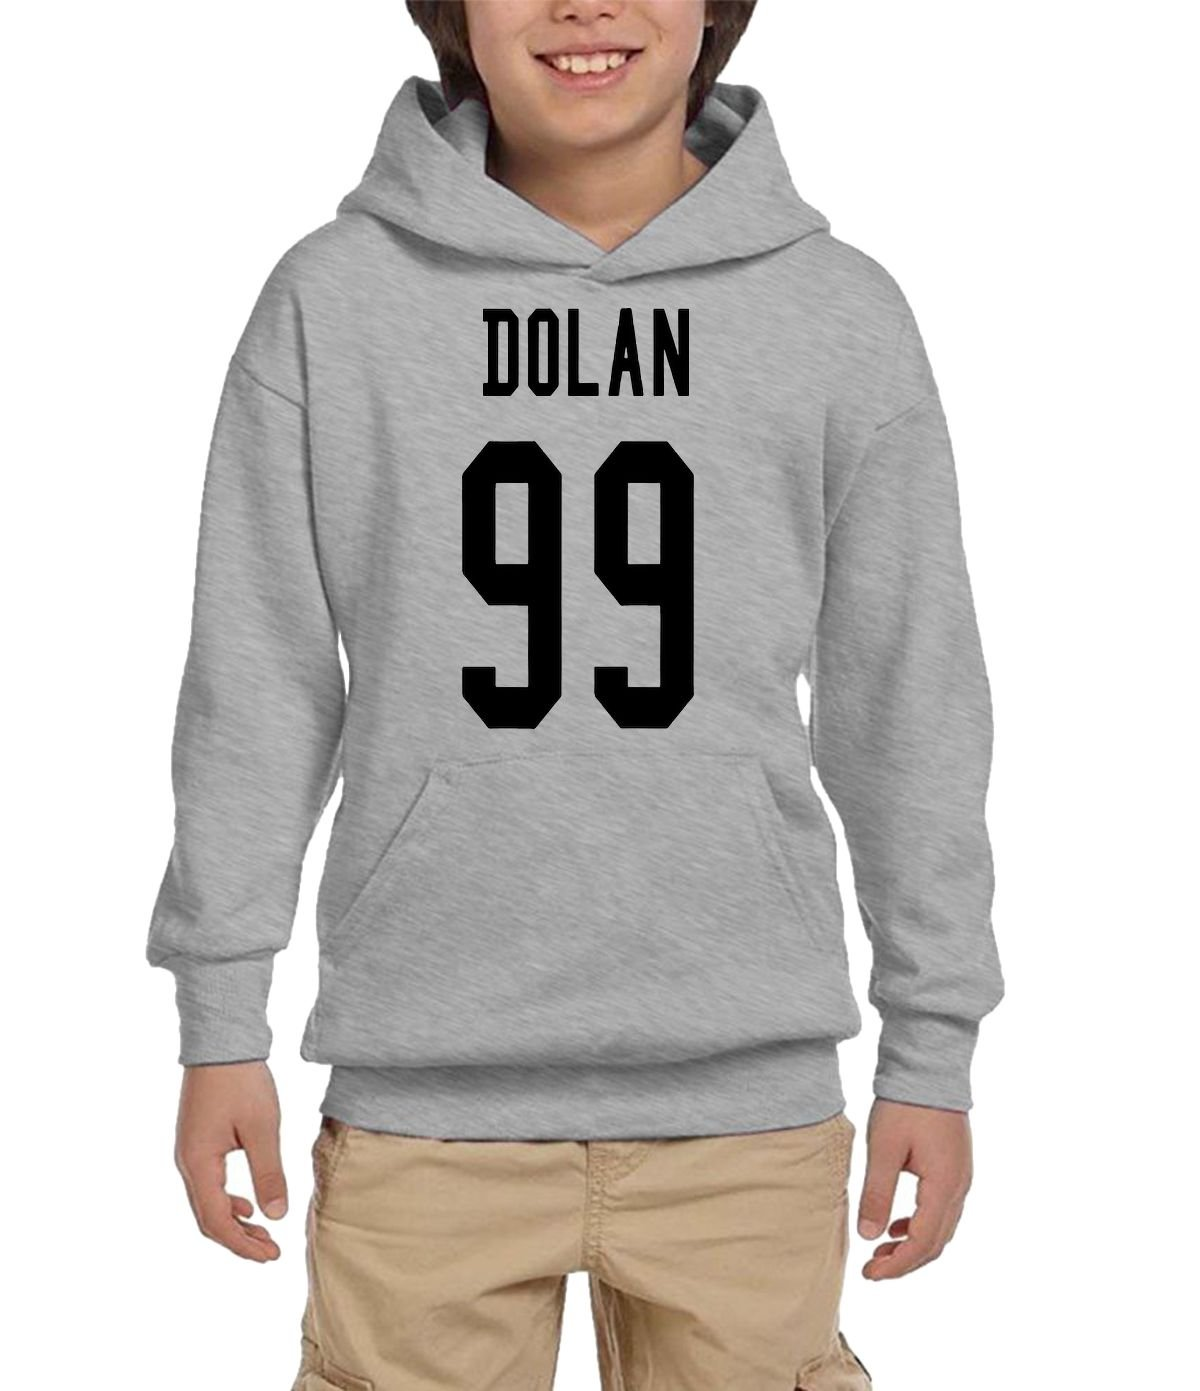 SAOZI Dolan 99 Twins Fashion Custom Youth Hoodies by SAOZI